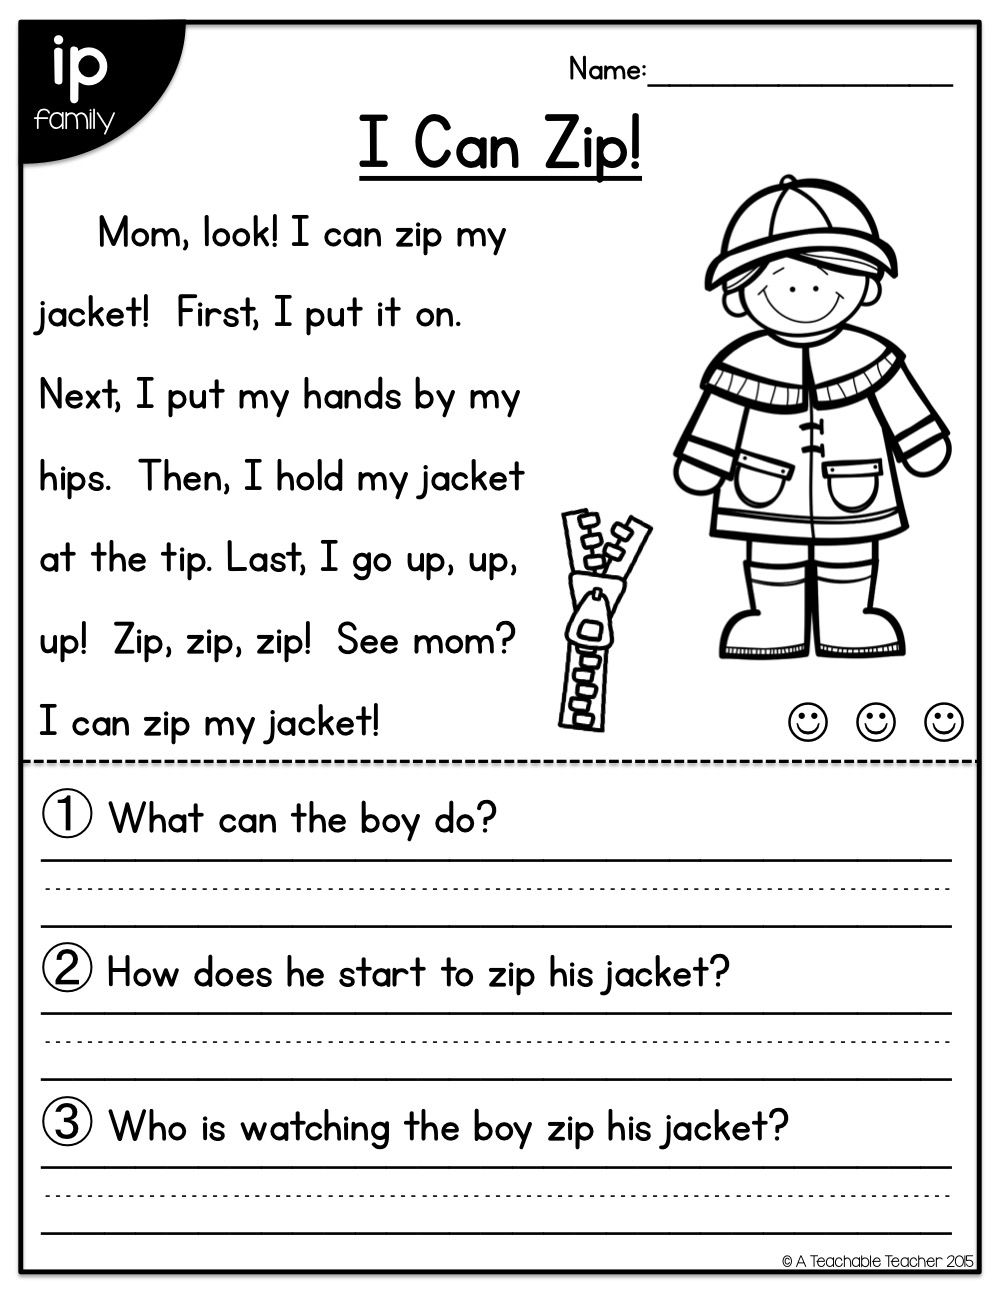 worksheet Short Vowel Reading Worksheets short vowel reading passages all in one comprehension perfect for kindergarteners and first grade intervention